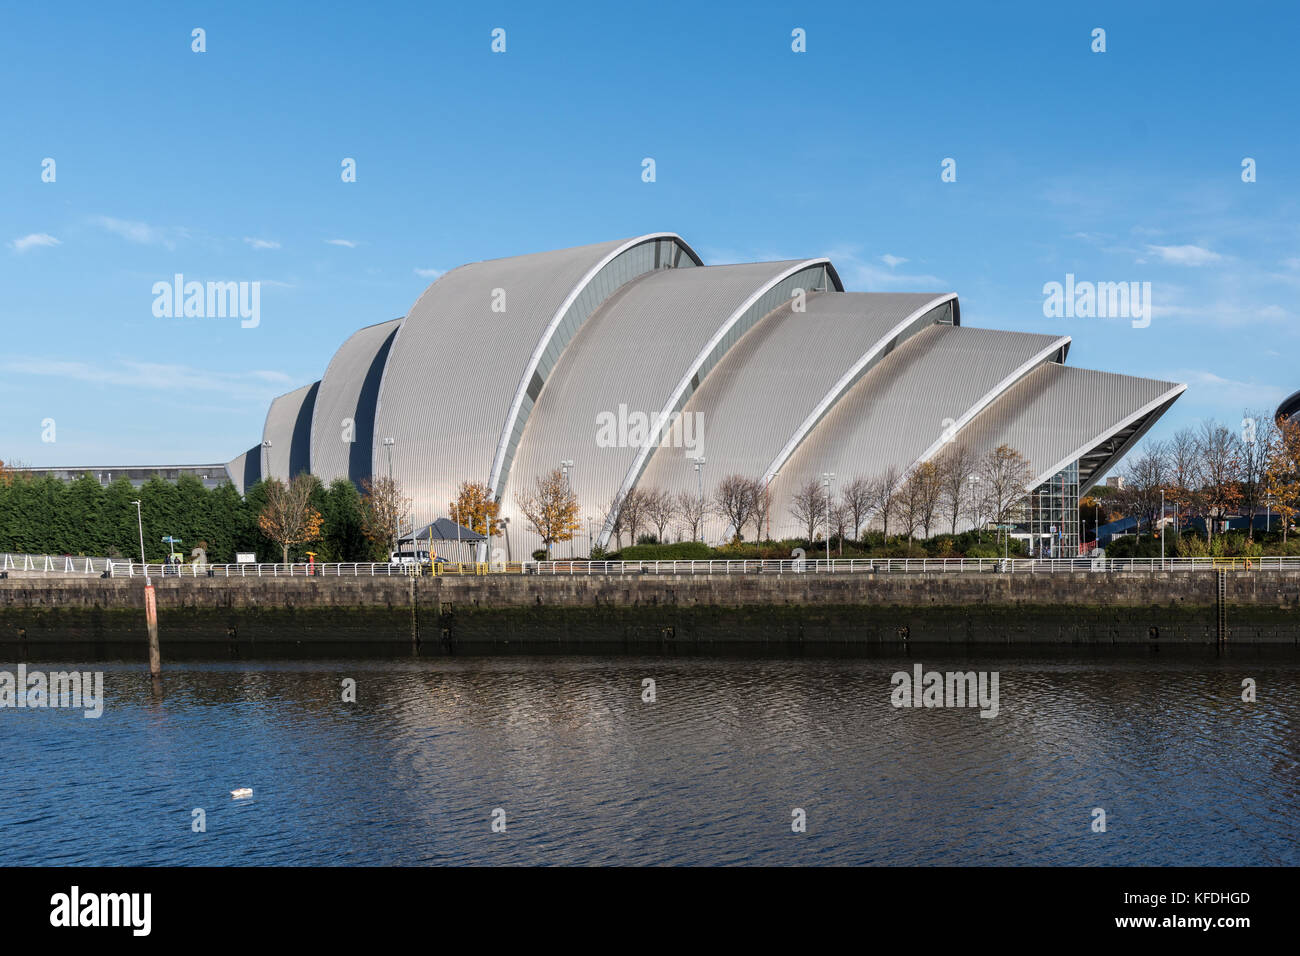 The Clyde Auditorium also known as The Armadillo in Glasgow - Stock Image